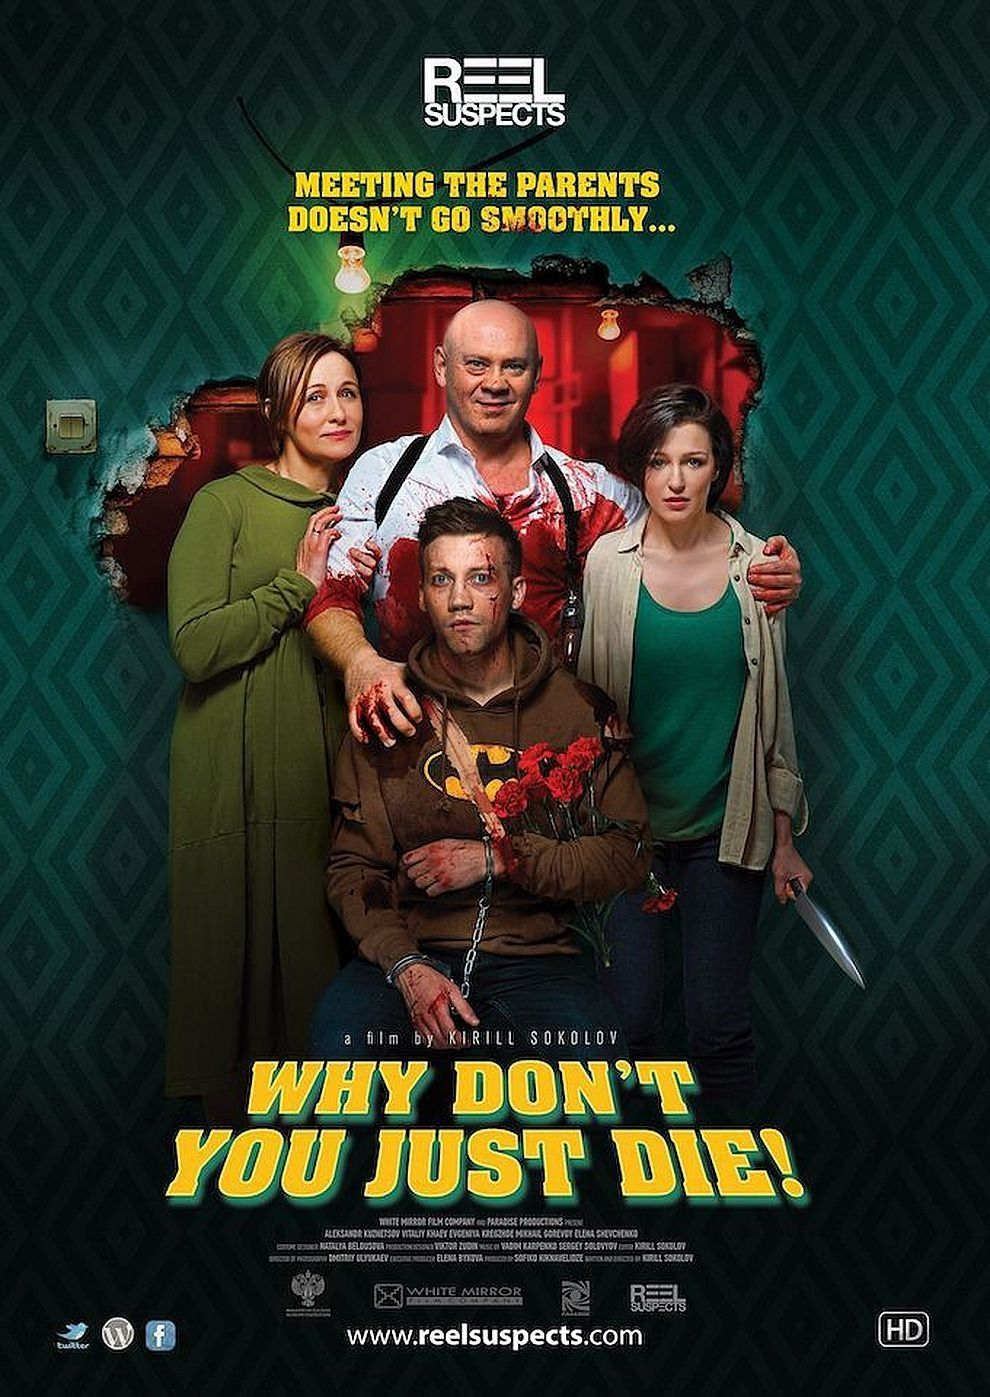 Plakat des Films: Why don't you just die!